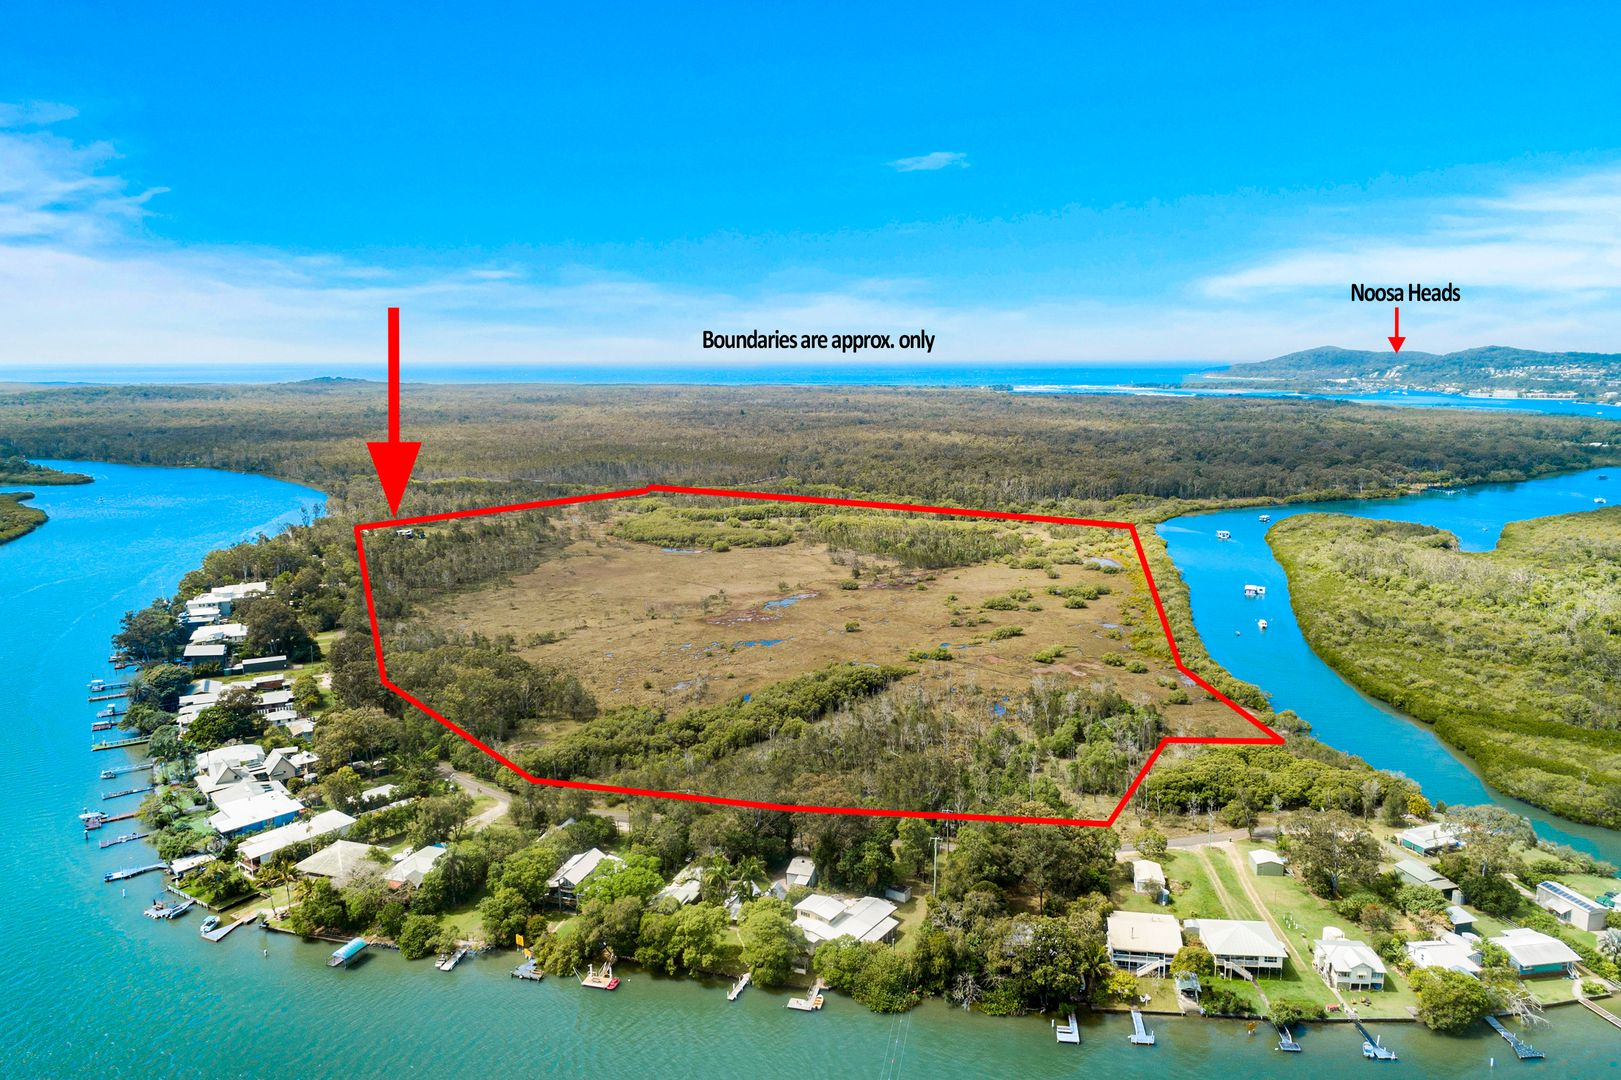 20-74 Noosa River Drive, Noosa North Shore QLD 4565, Image 0